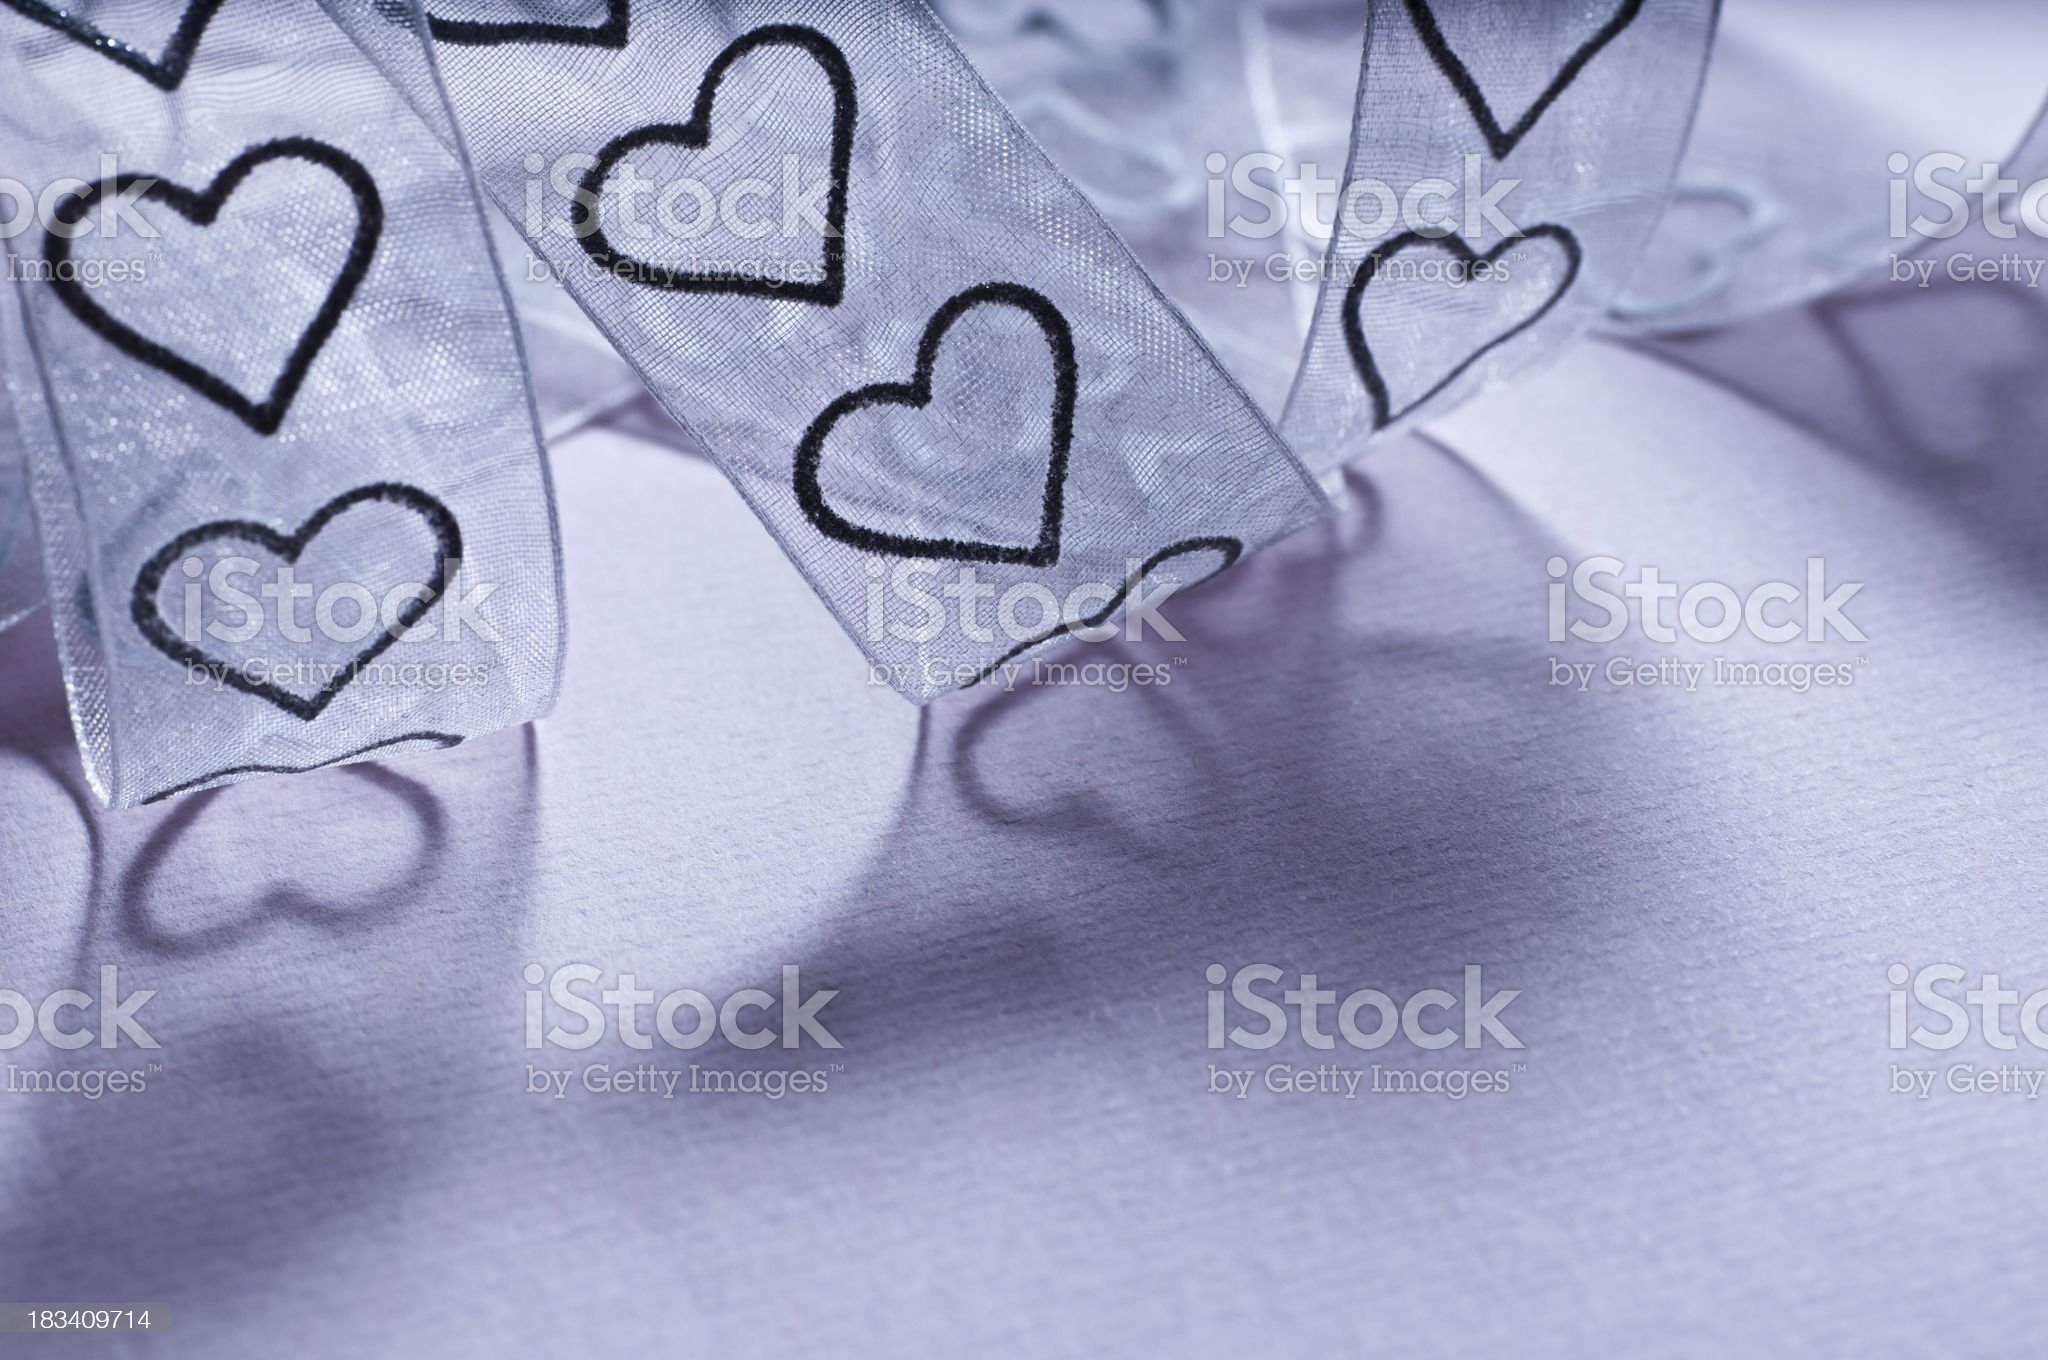 embroidery of hearts on tulle textile royalty-free stock photo